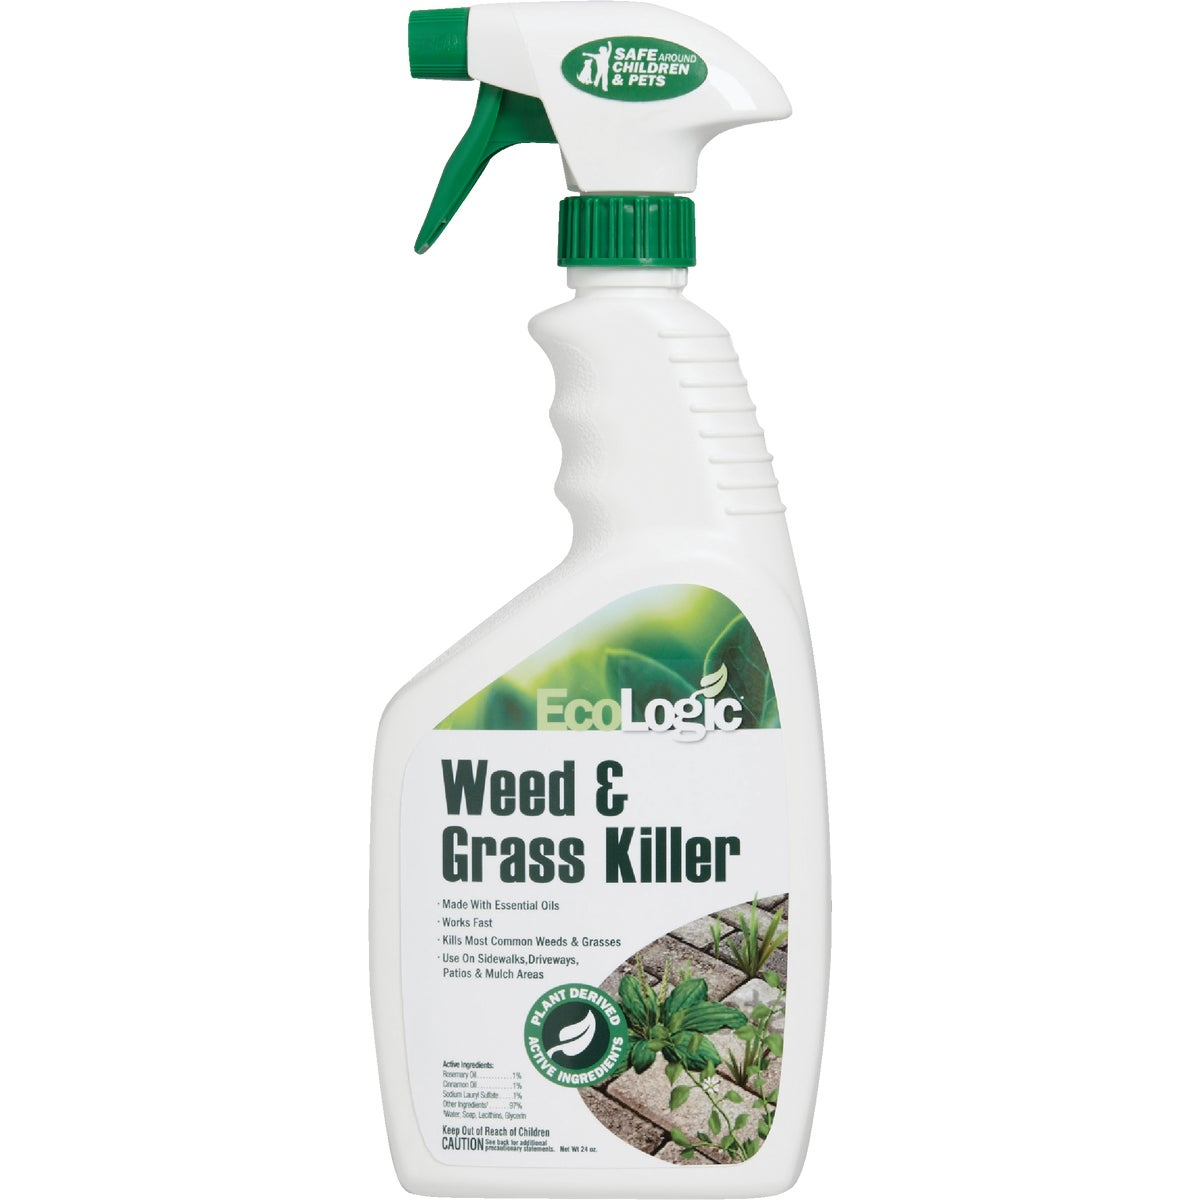 24OZ WEED & GRASS KILLR - 33113 by Ecosmart Tech